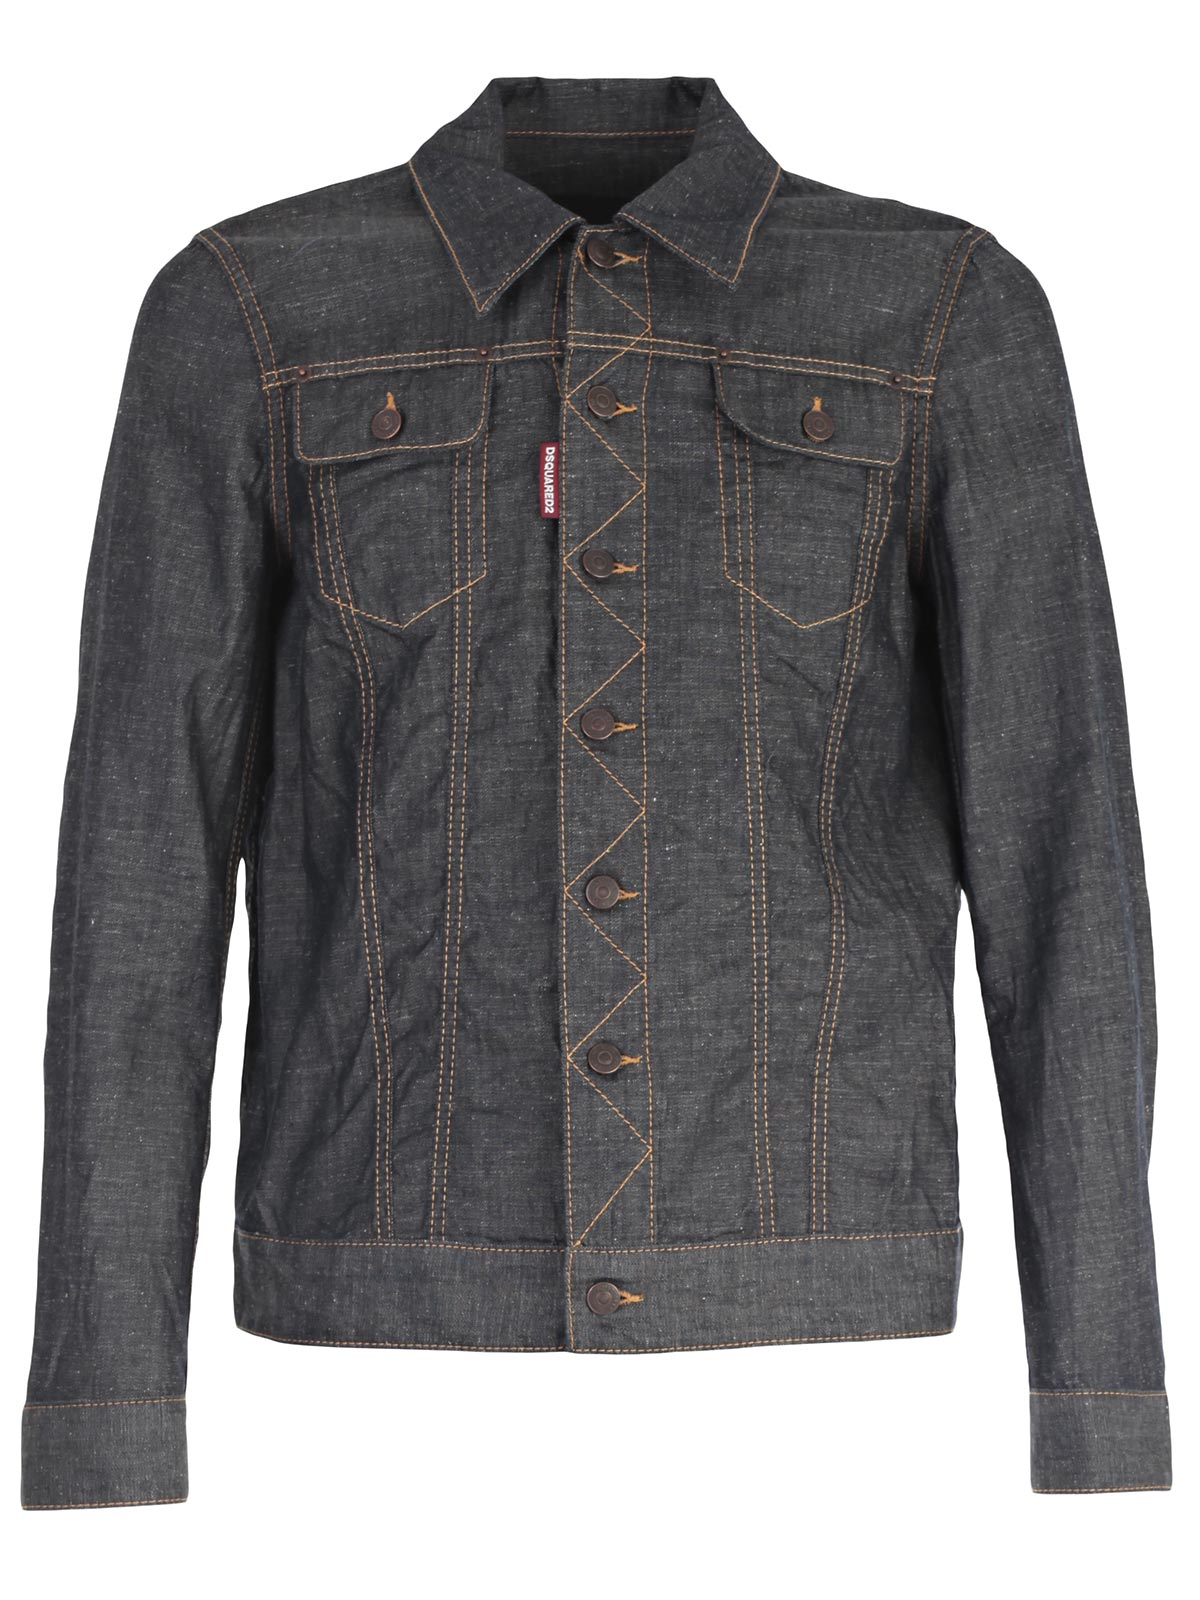 Picture of DSQUARED2 JACKET GIUBBOTTO JEANS